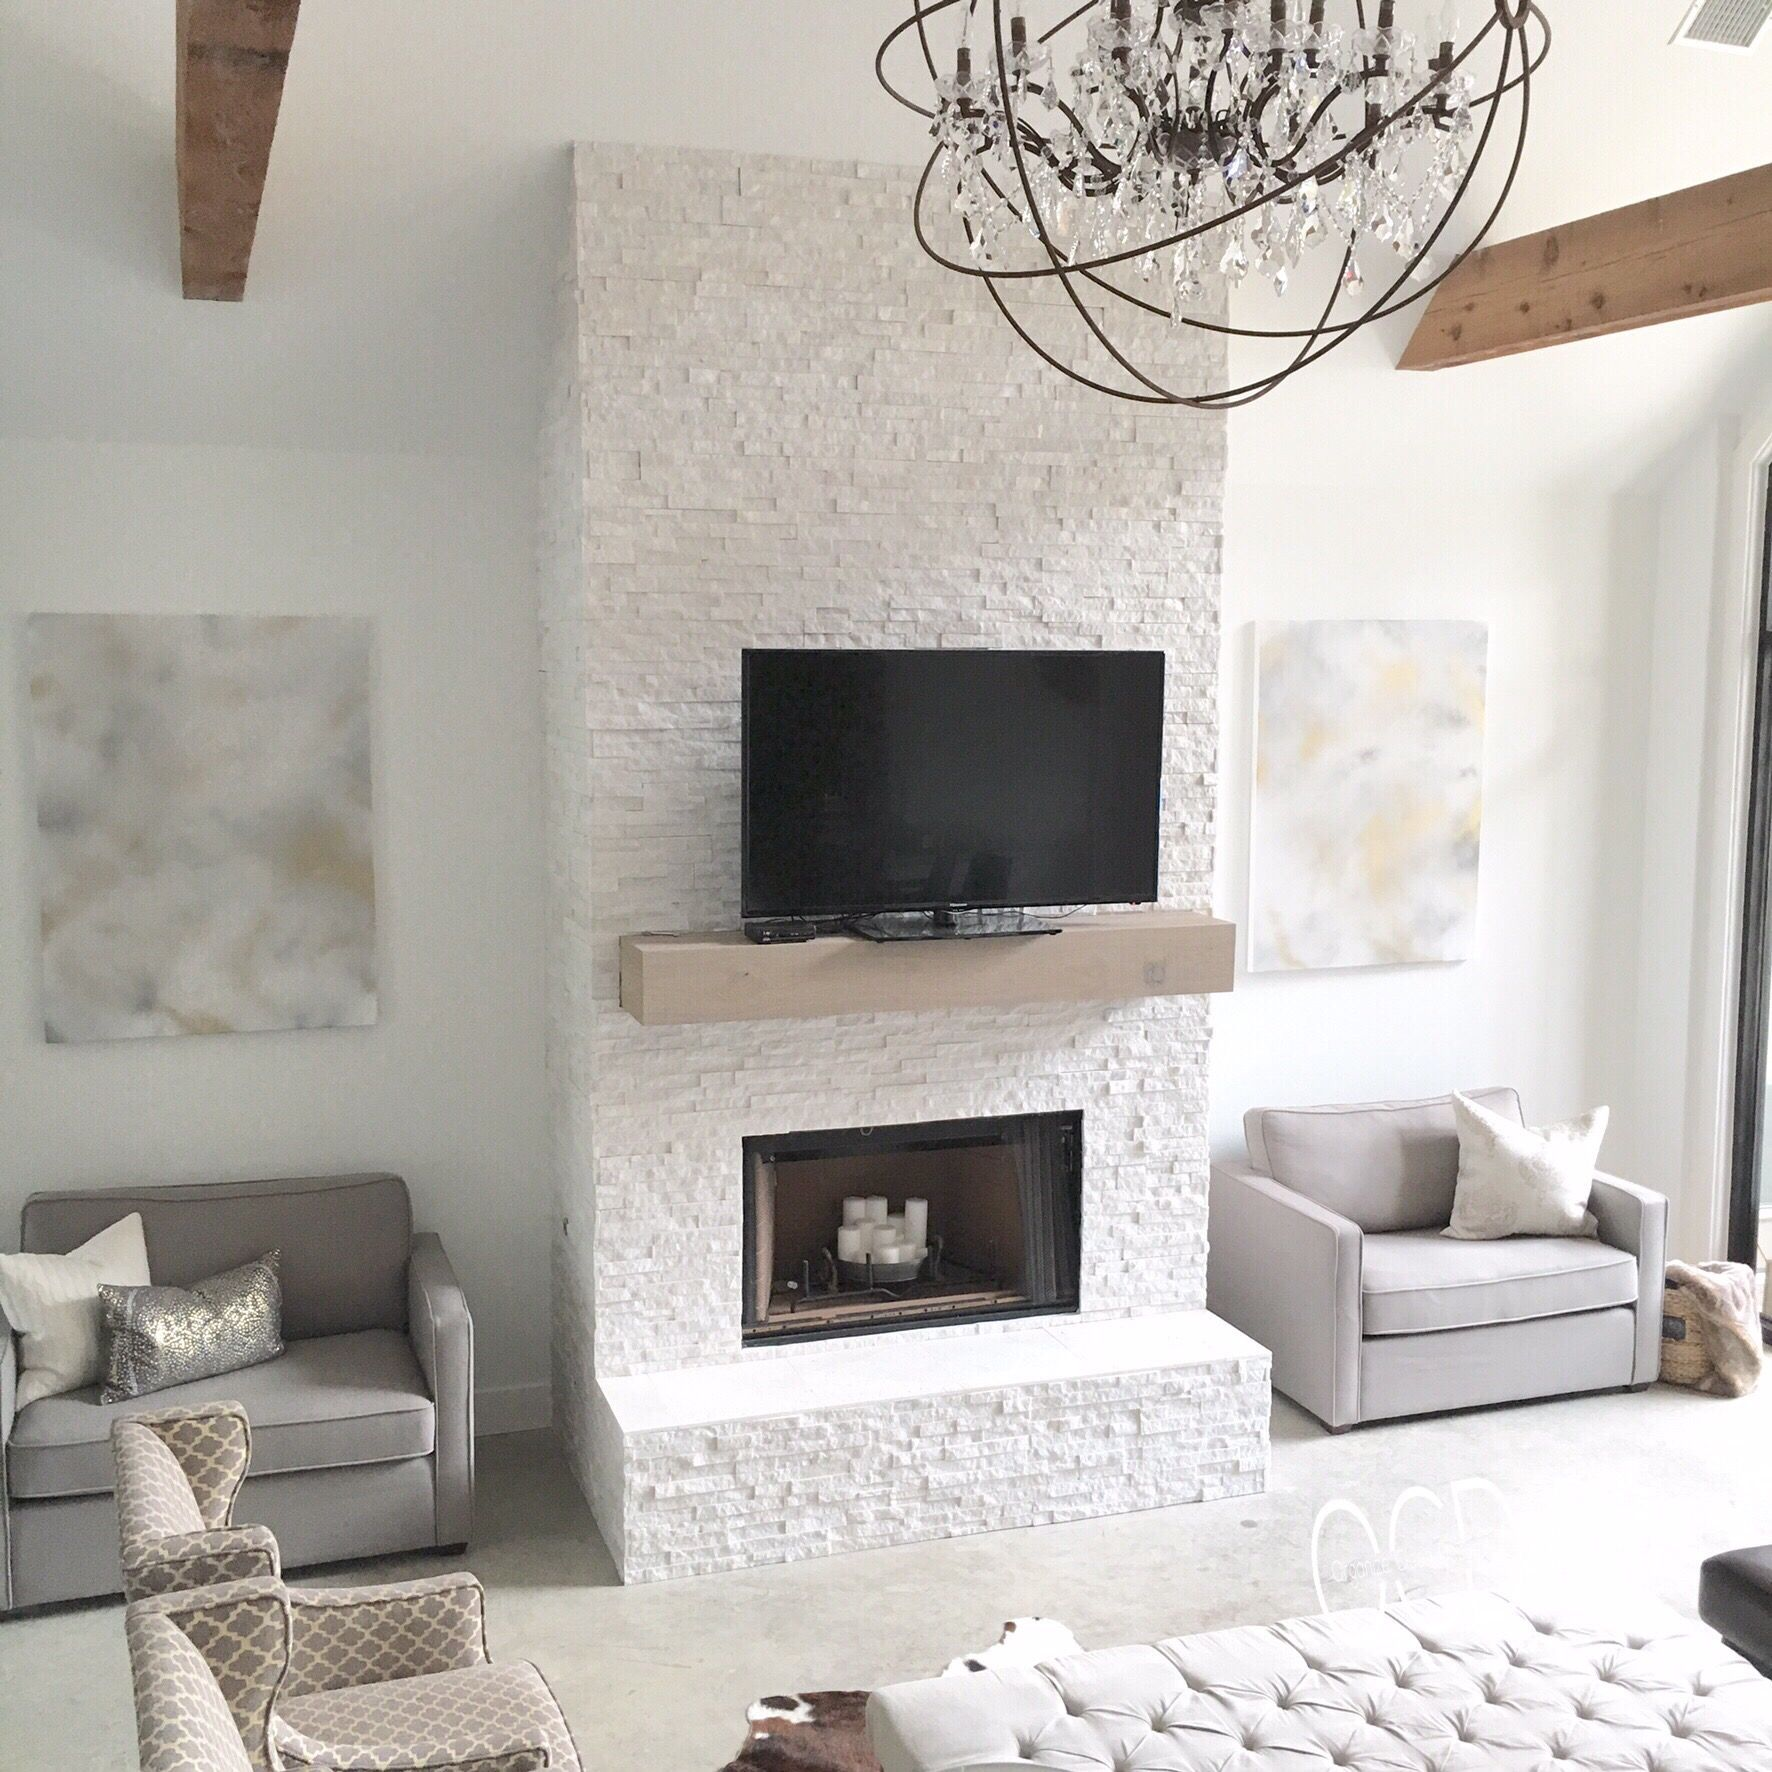 Gray And White Transitional Rustic Living Room With: White Grey Gray Neutral Decor Living Room Rustic Glam